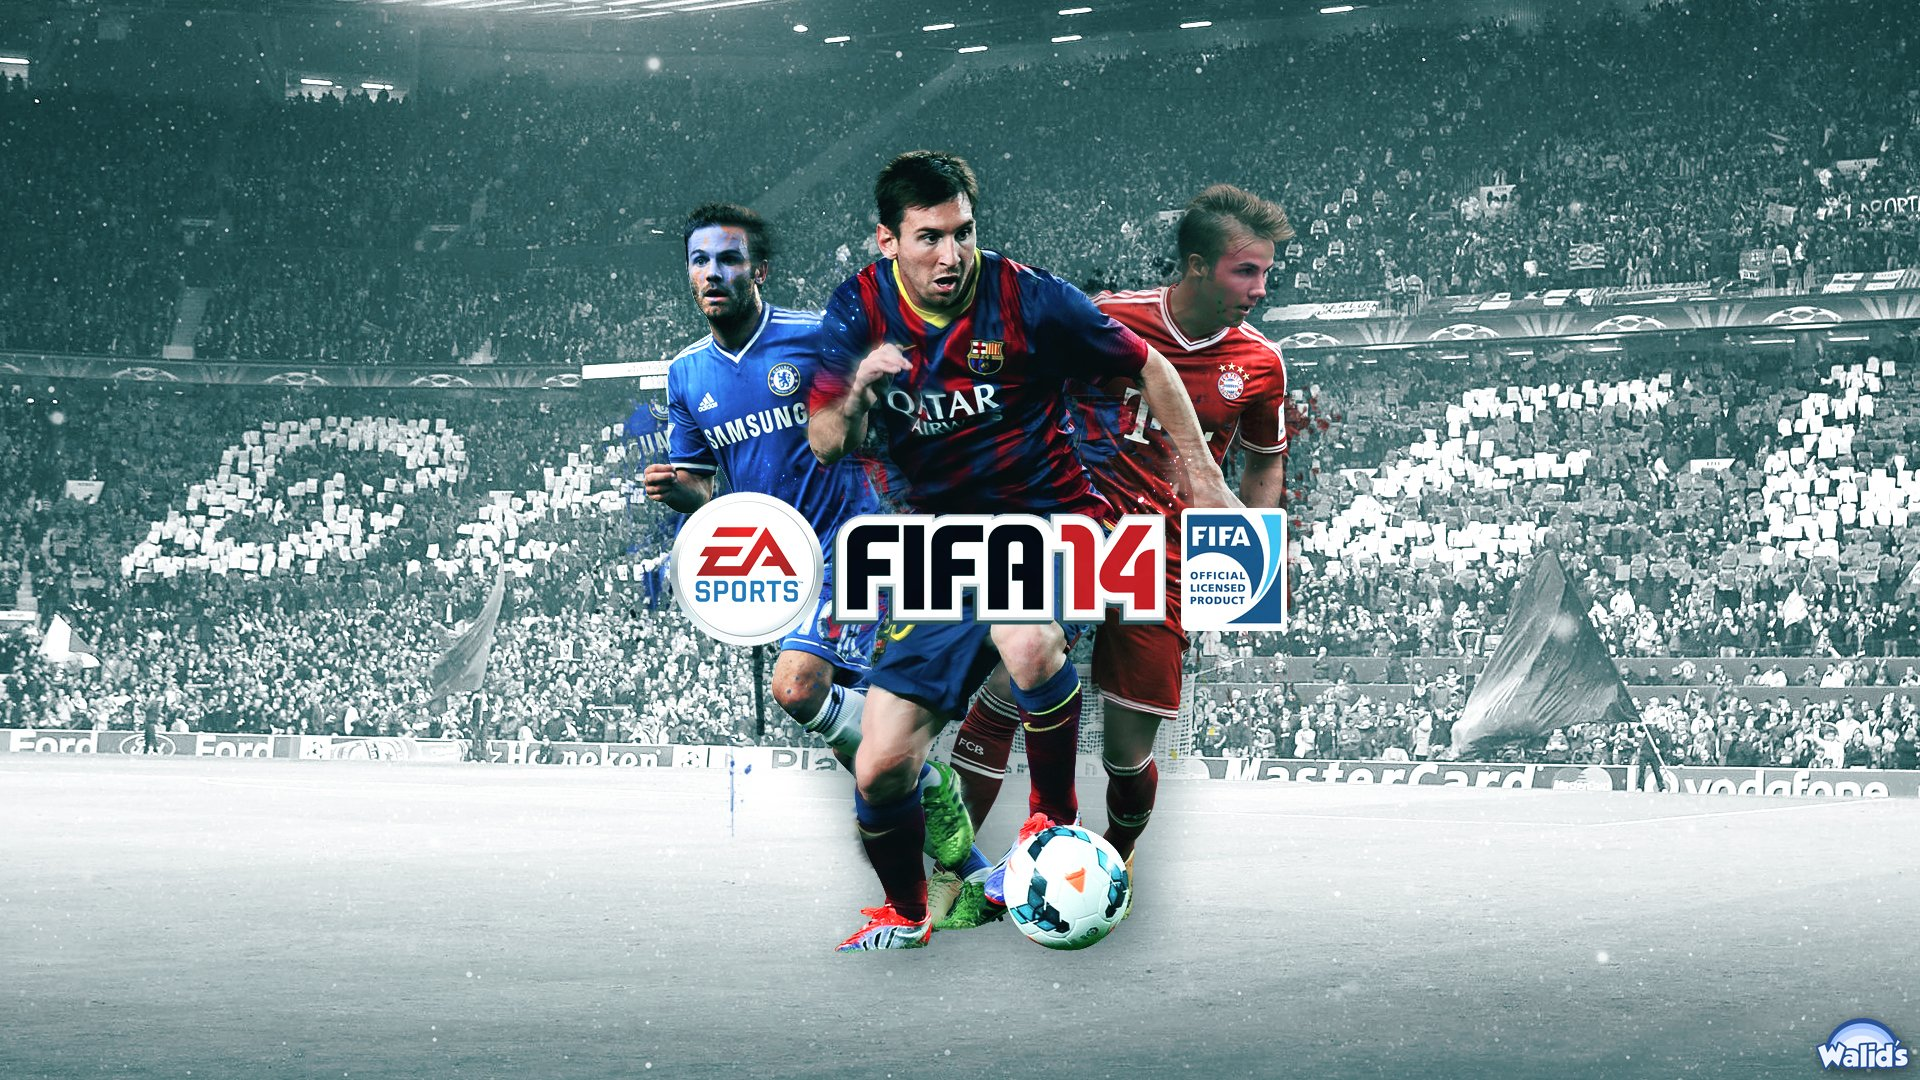 Fifa 14 world cup soccer game fifa14 60 wallpaper 1920x1080 fifa 14 world cup soccer game fifa14 60 wallpaper 1920x1080 362118 wallpaperup voltagebd Images